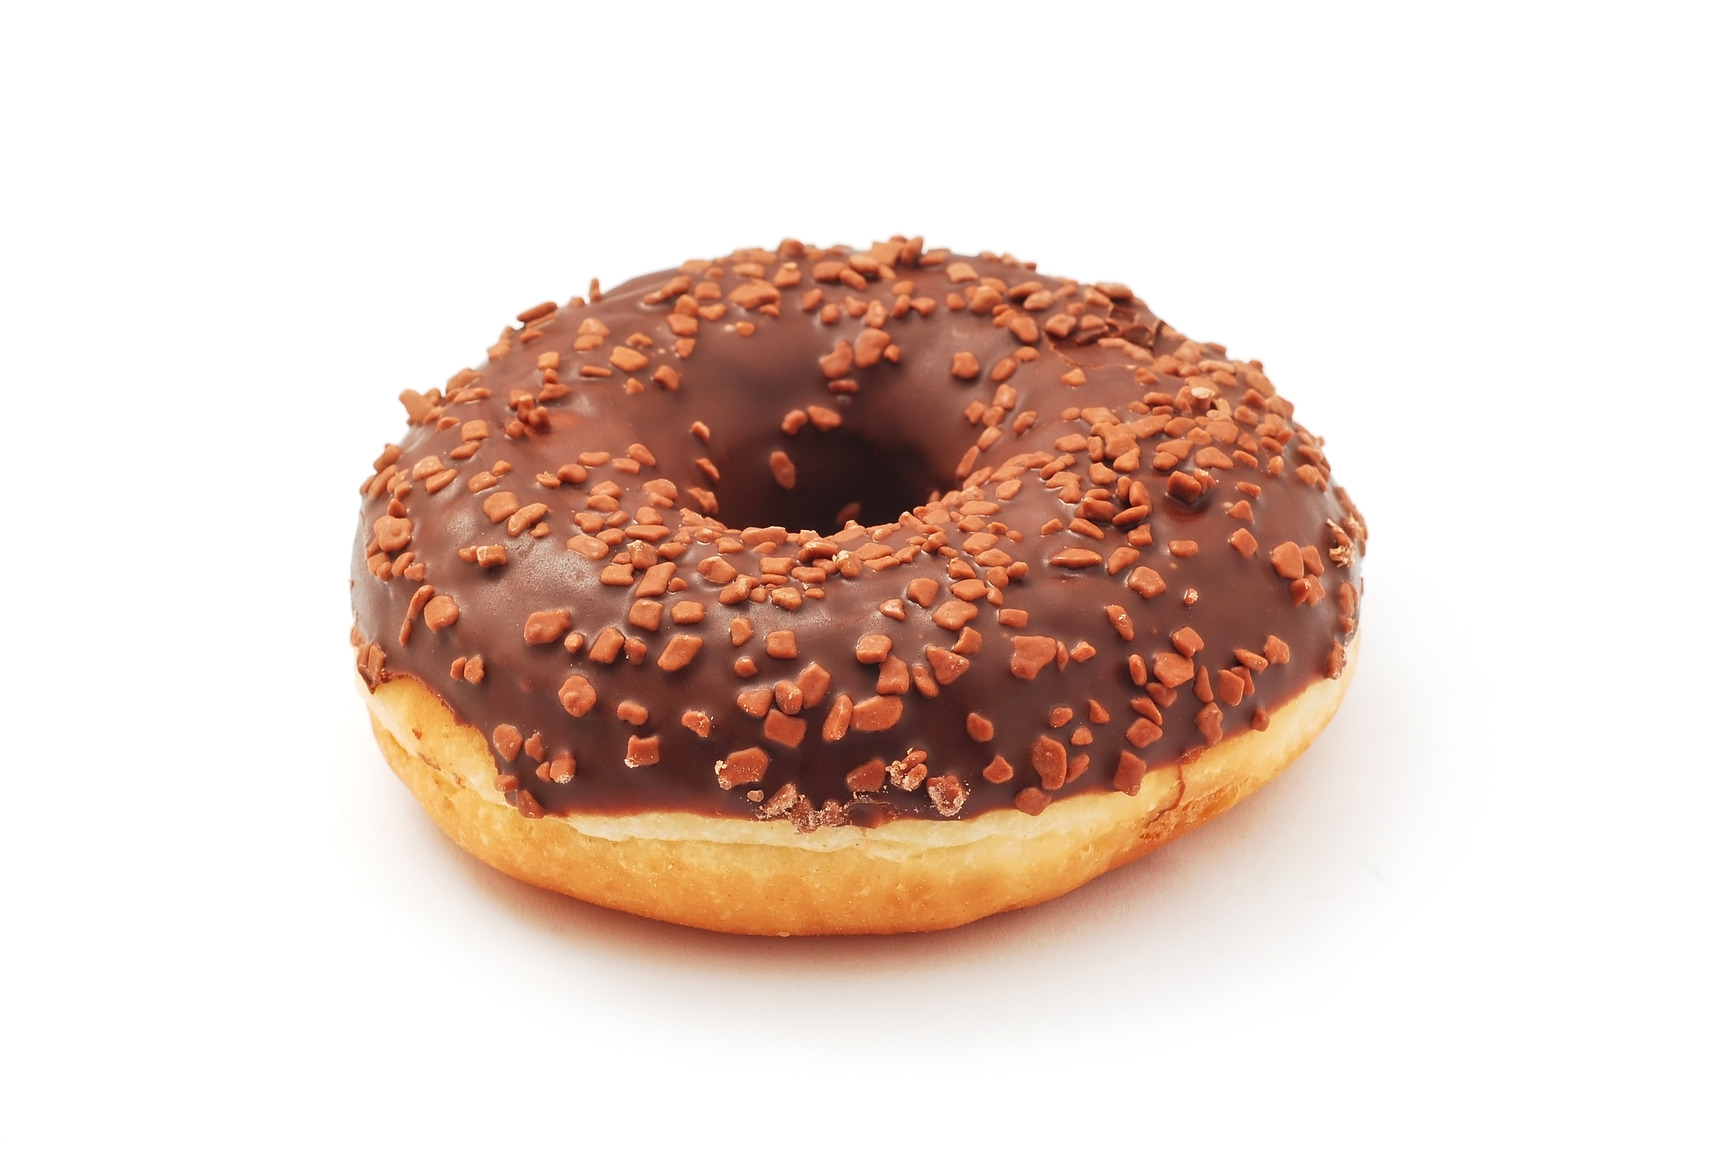 chocolate doughnut on white background